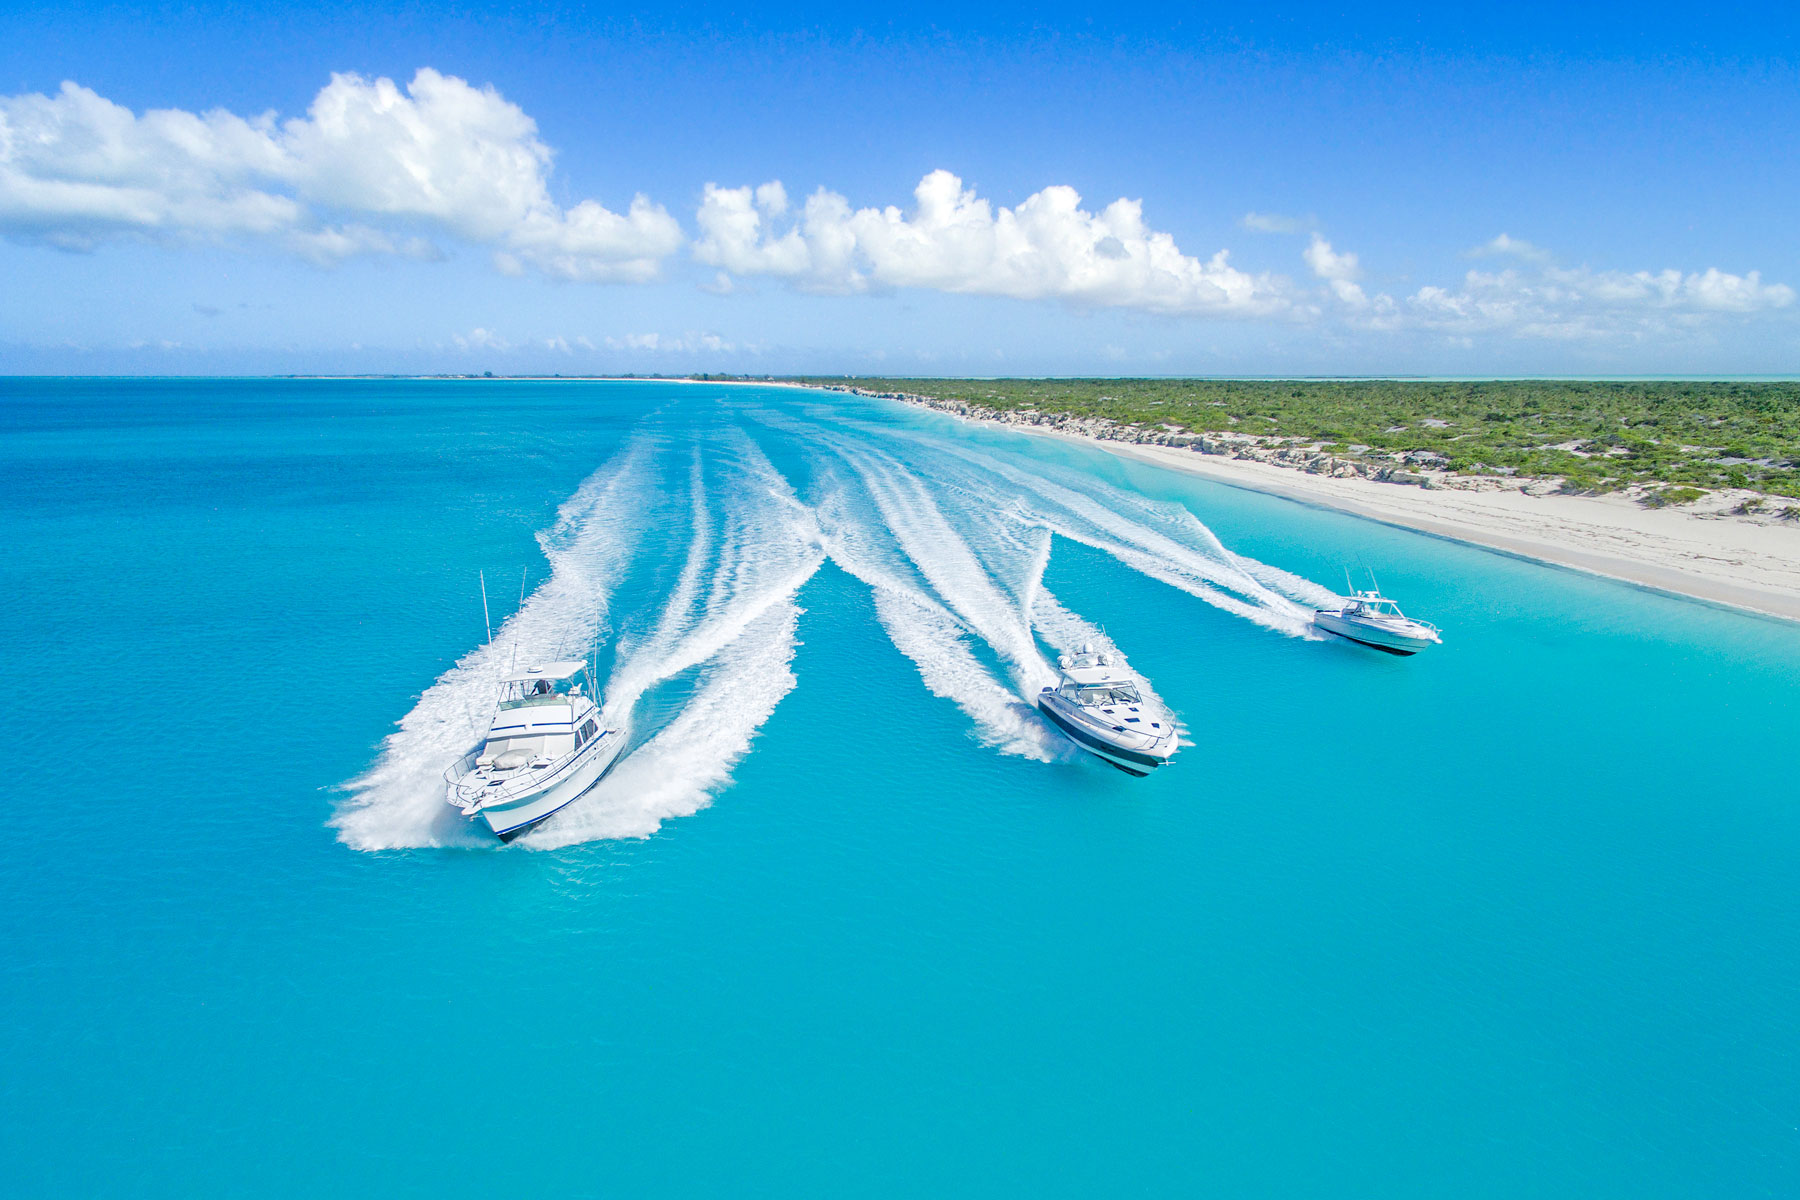 Sport fishing and luxury yacht charters in Turks and Caicos